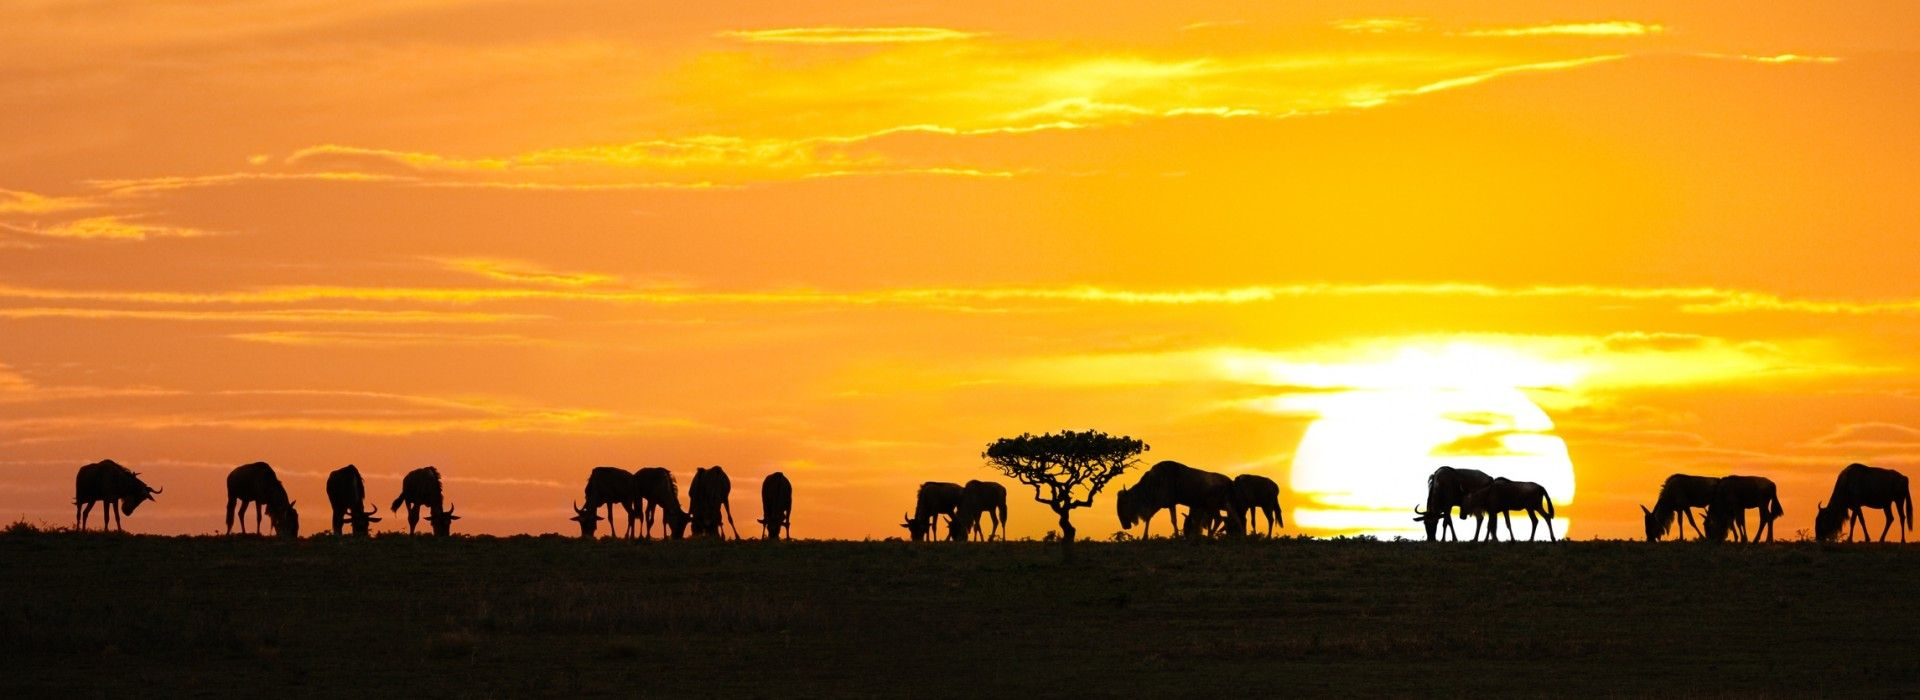 Beach, romance, getaways and relaxation Tours in Ngorongoro Crater